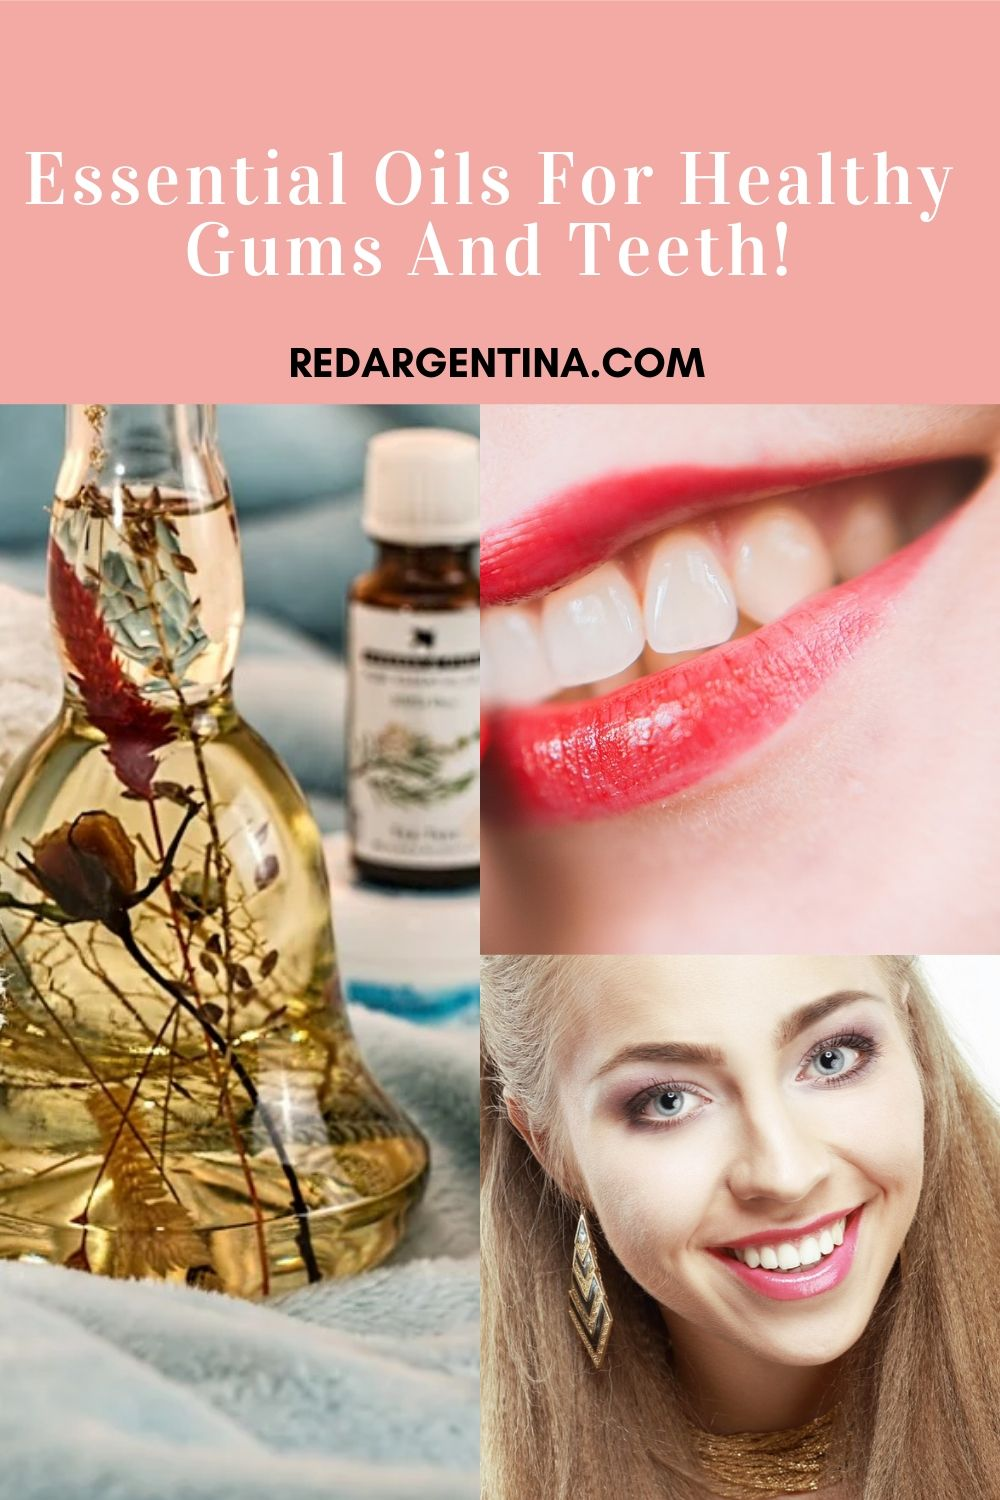 essential-oils-for-healthy-gums-and-teeth-2302939